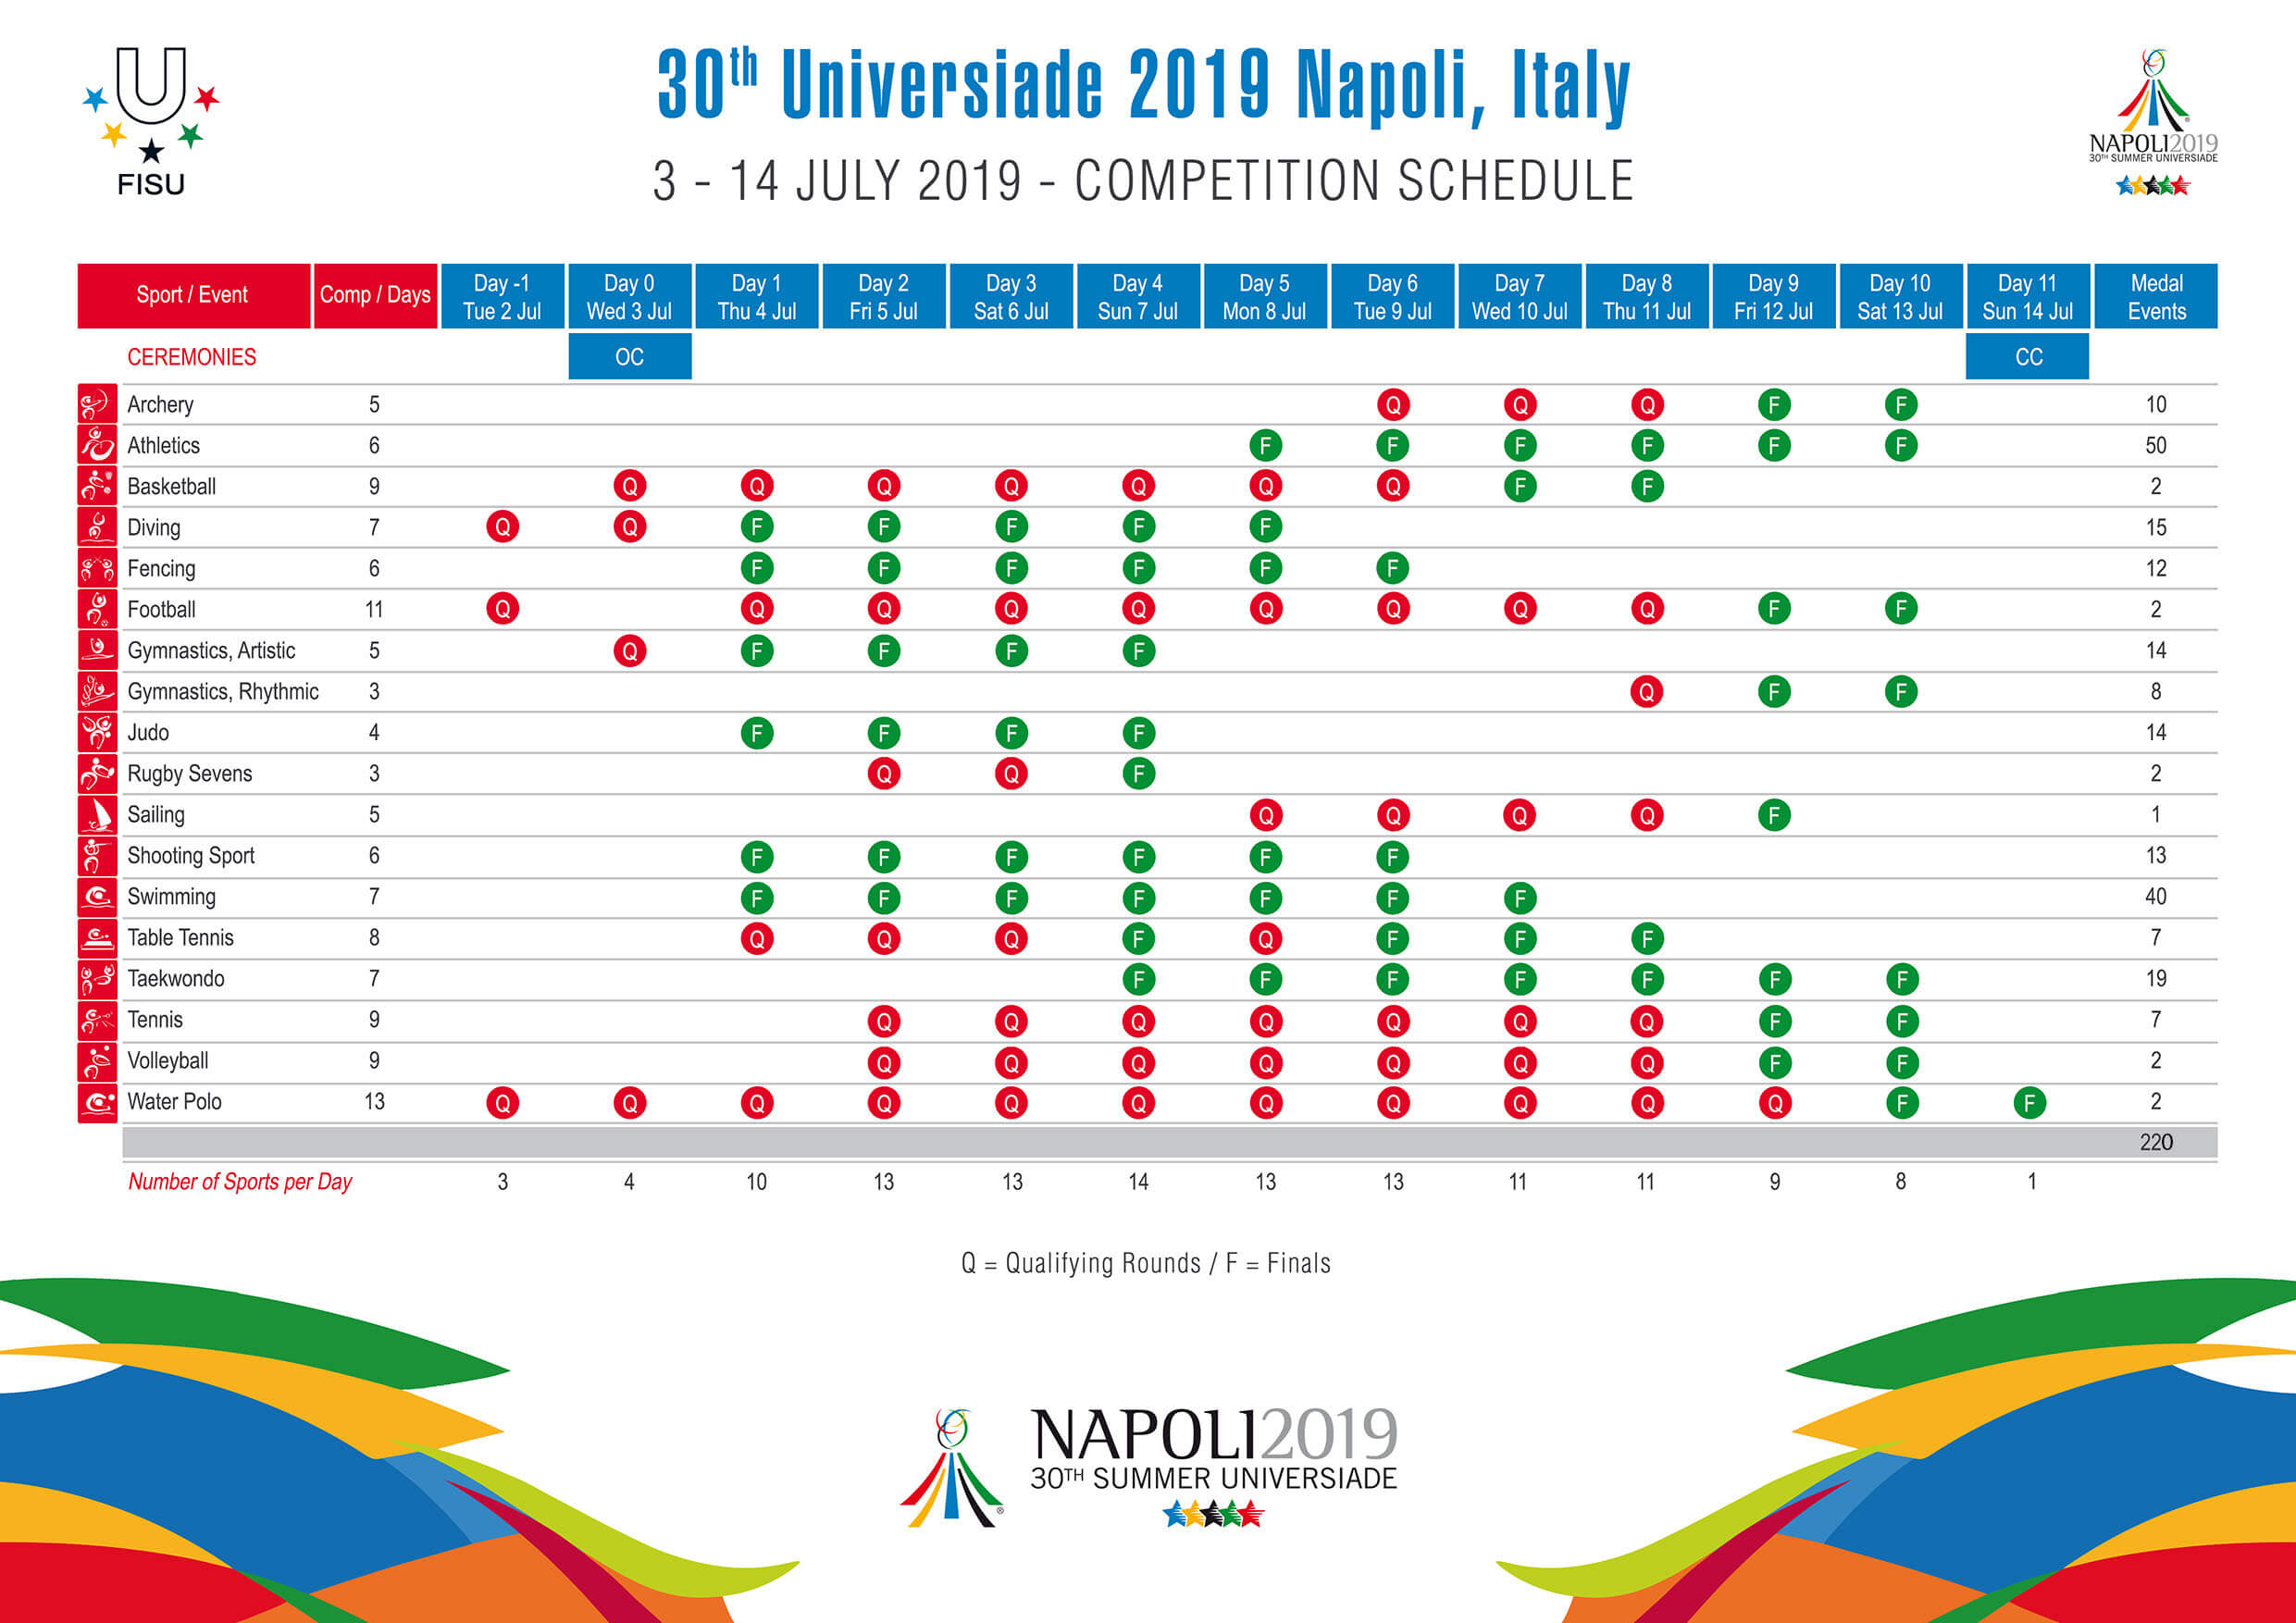 Competition Schedule_Universiade_Napoli_2019